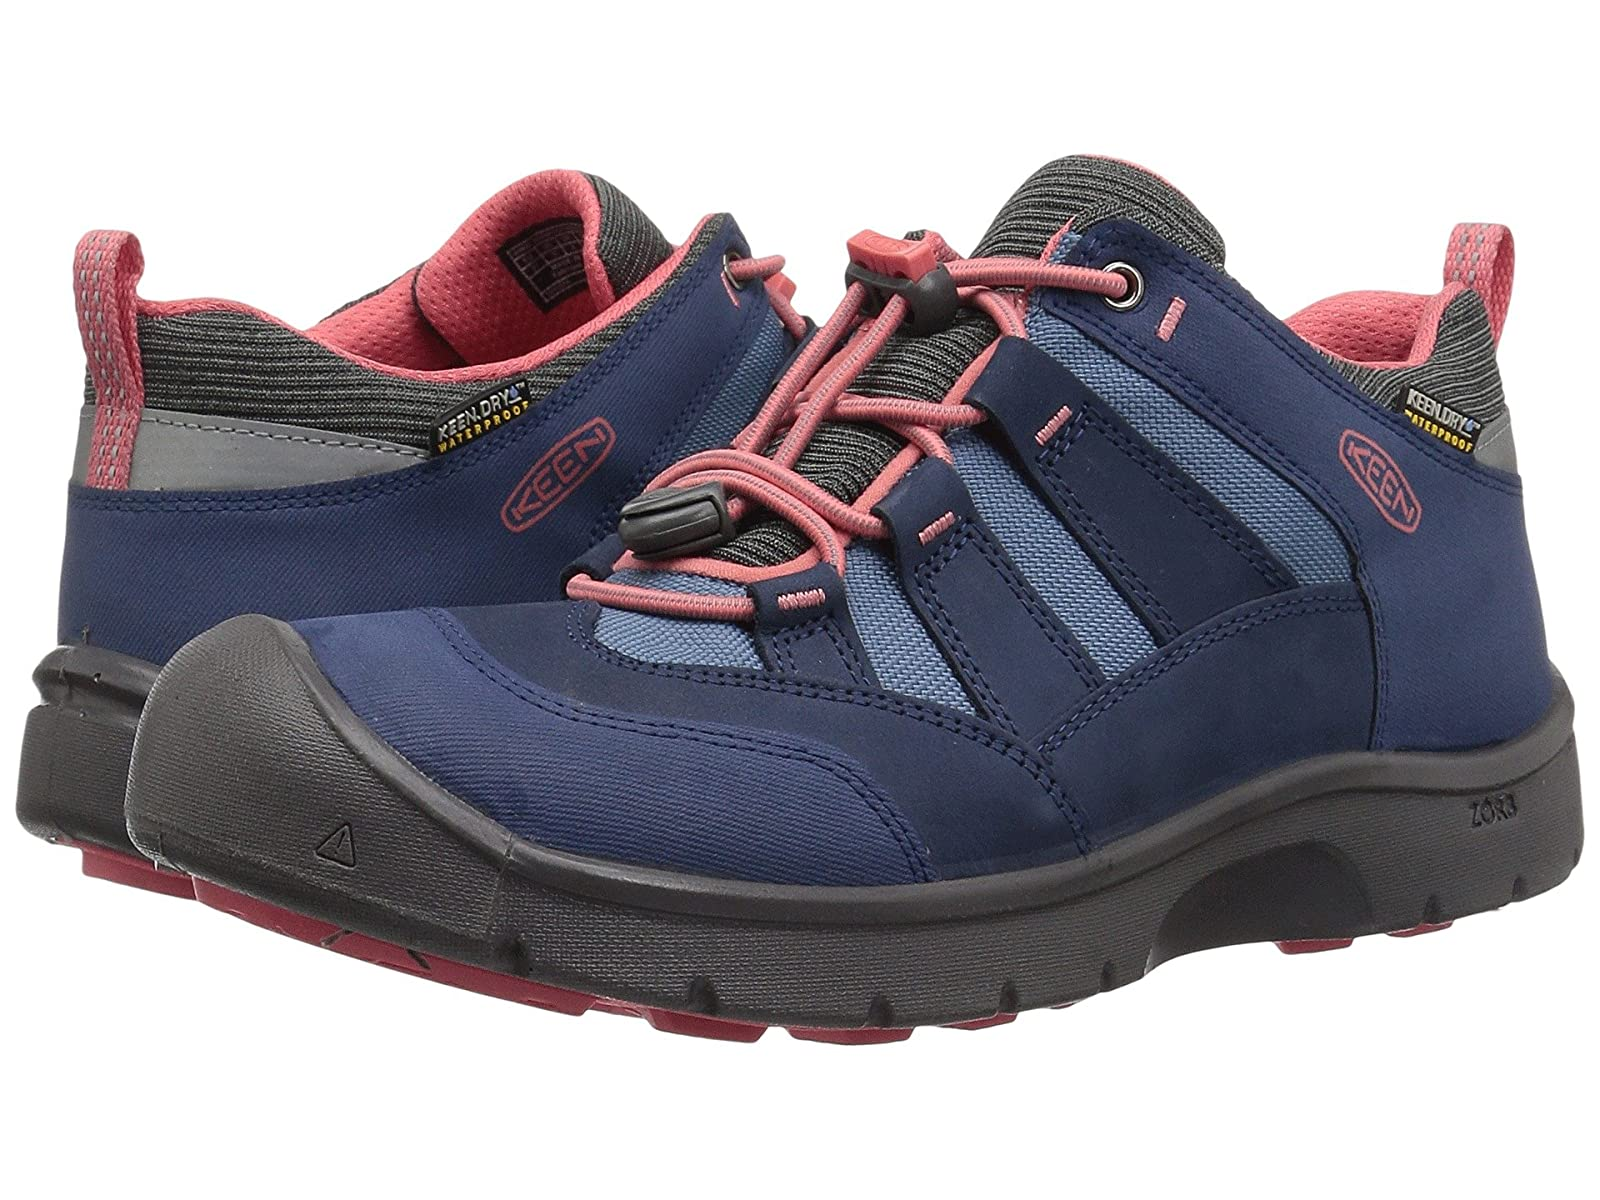 Keen Kids Hikeport WP (Little Kid/Big Kid)Cheap and distinctive eye-catching shoes